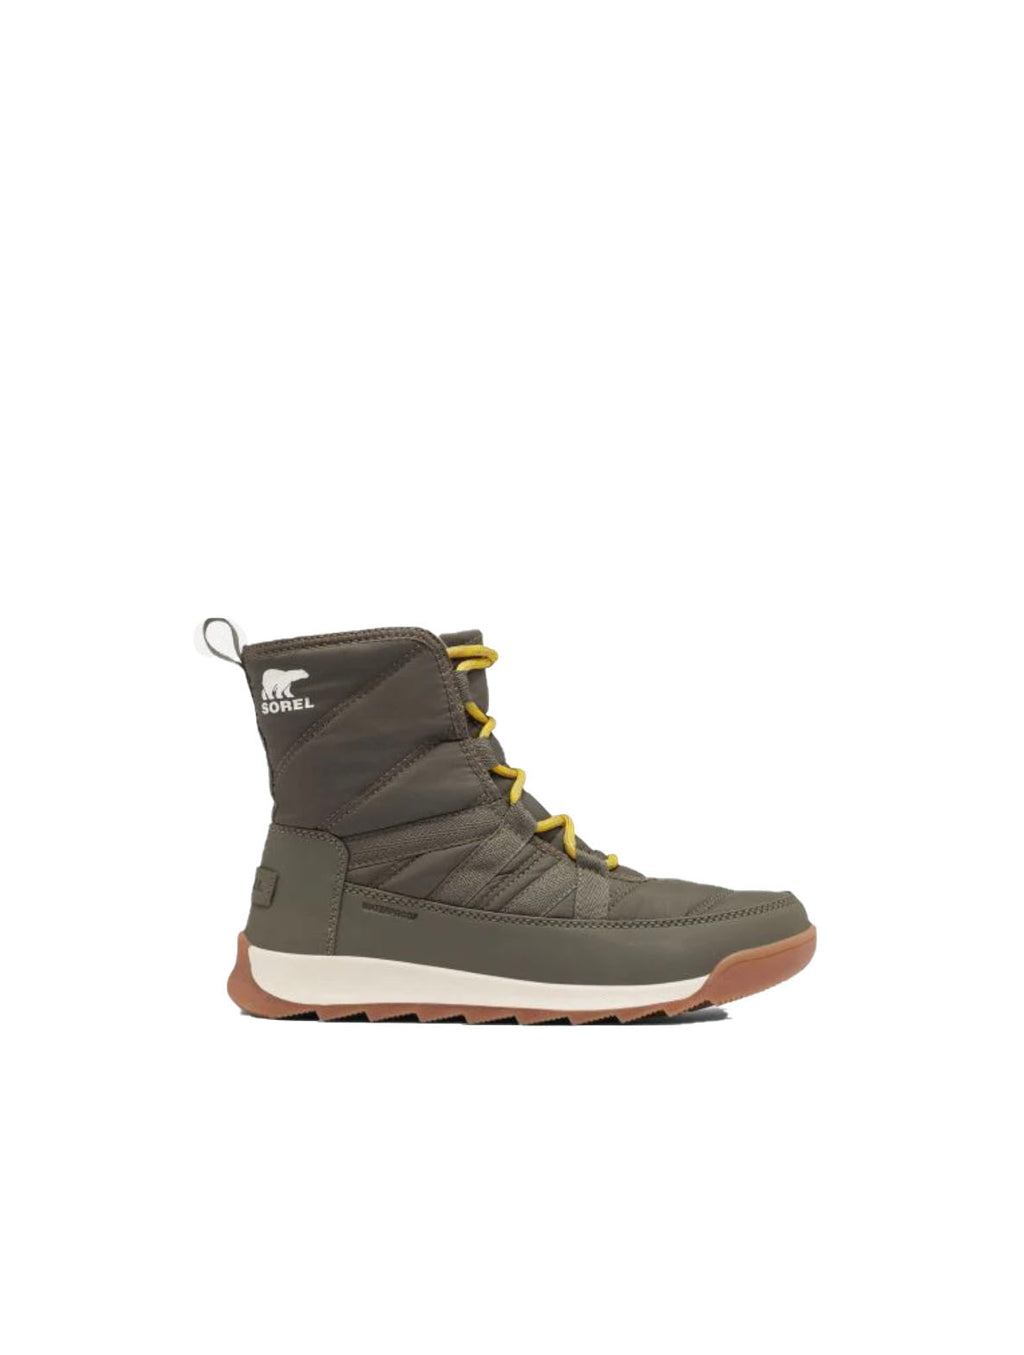 Sorel Whitney II Lace Boot in Alpine Tundra